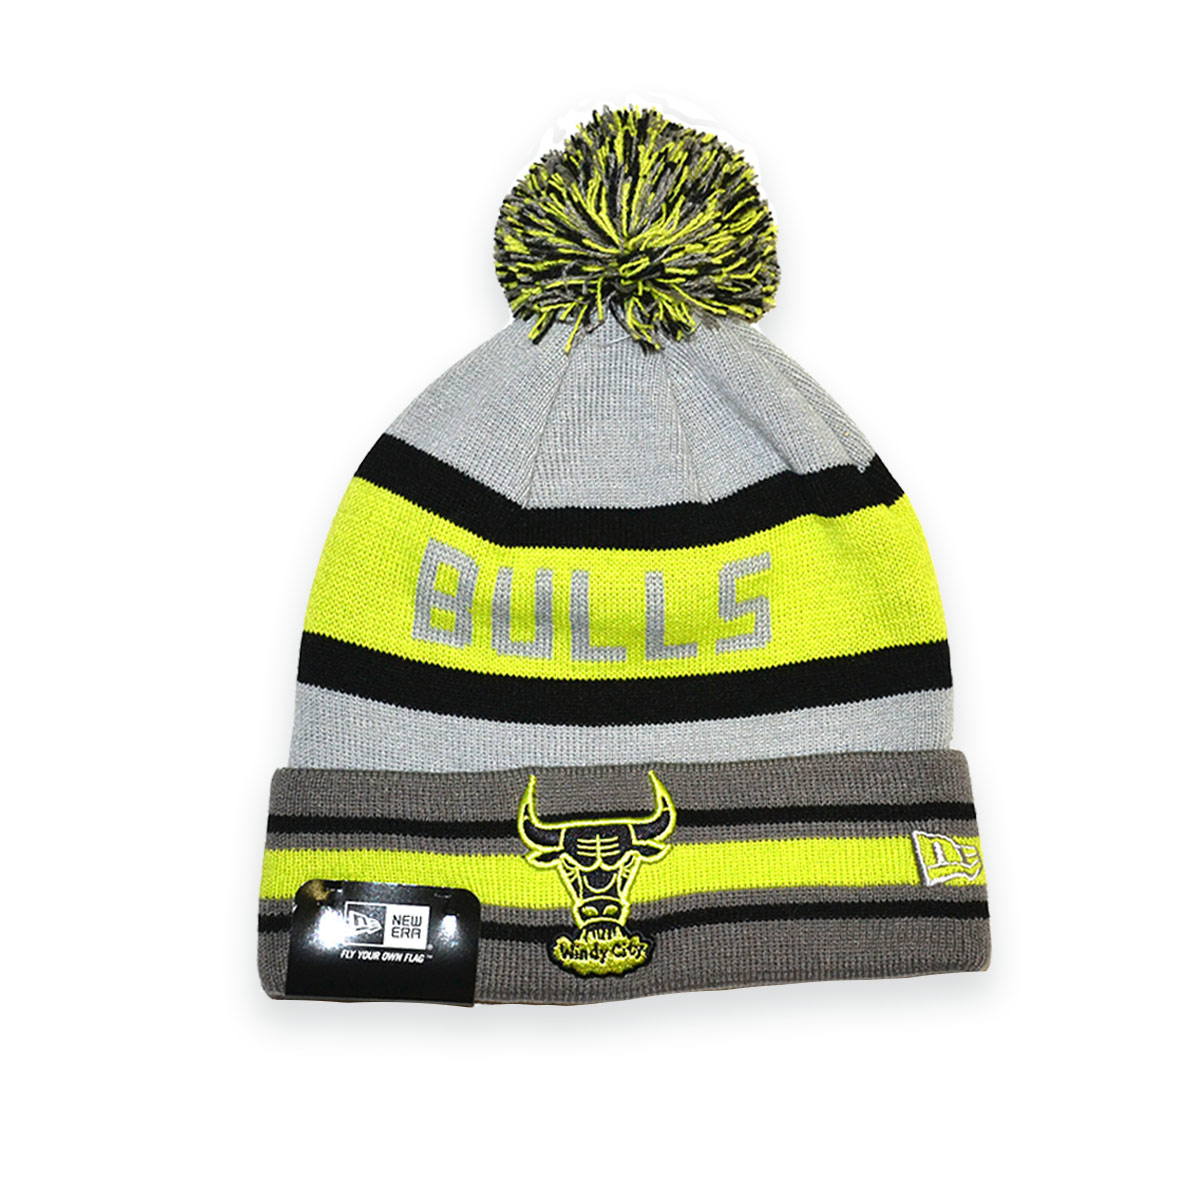 NEW ERA NBA CHICAGO BULLS GREEN GREY LOGO BEANIE HAT - MyCraze 4b0ef353252